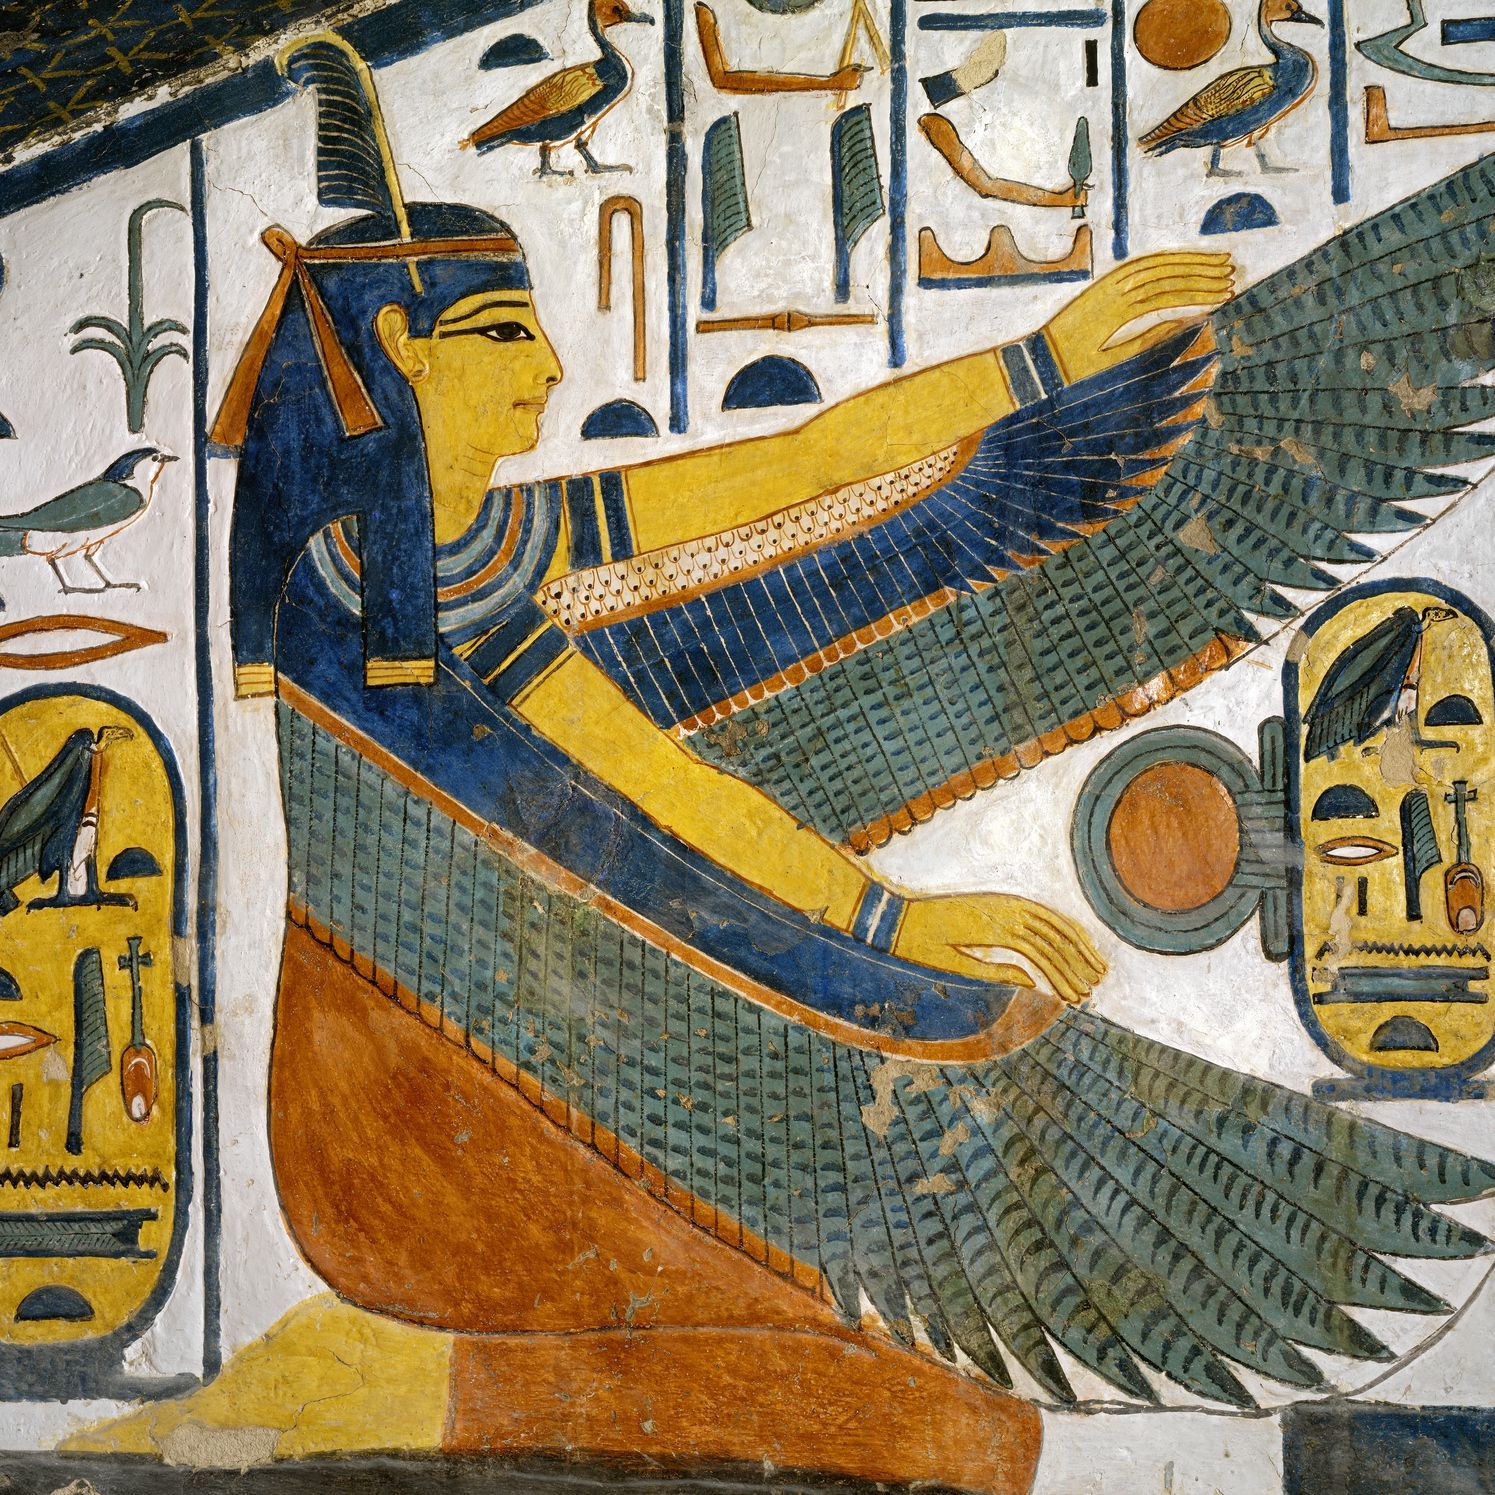 painting-of-the-goddess-ma-at-from-the-tomb-of-nefertari-528773636-57d495585f9b589b0a9507c4